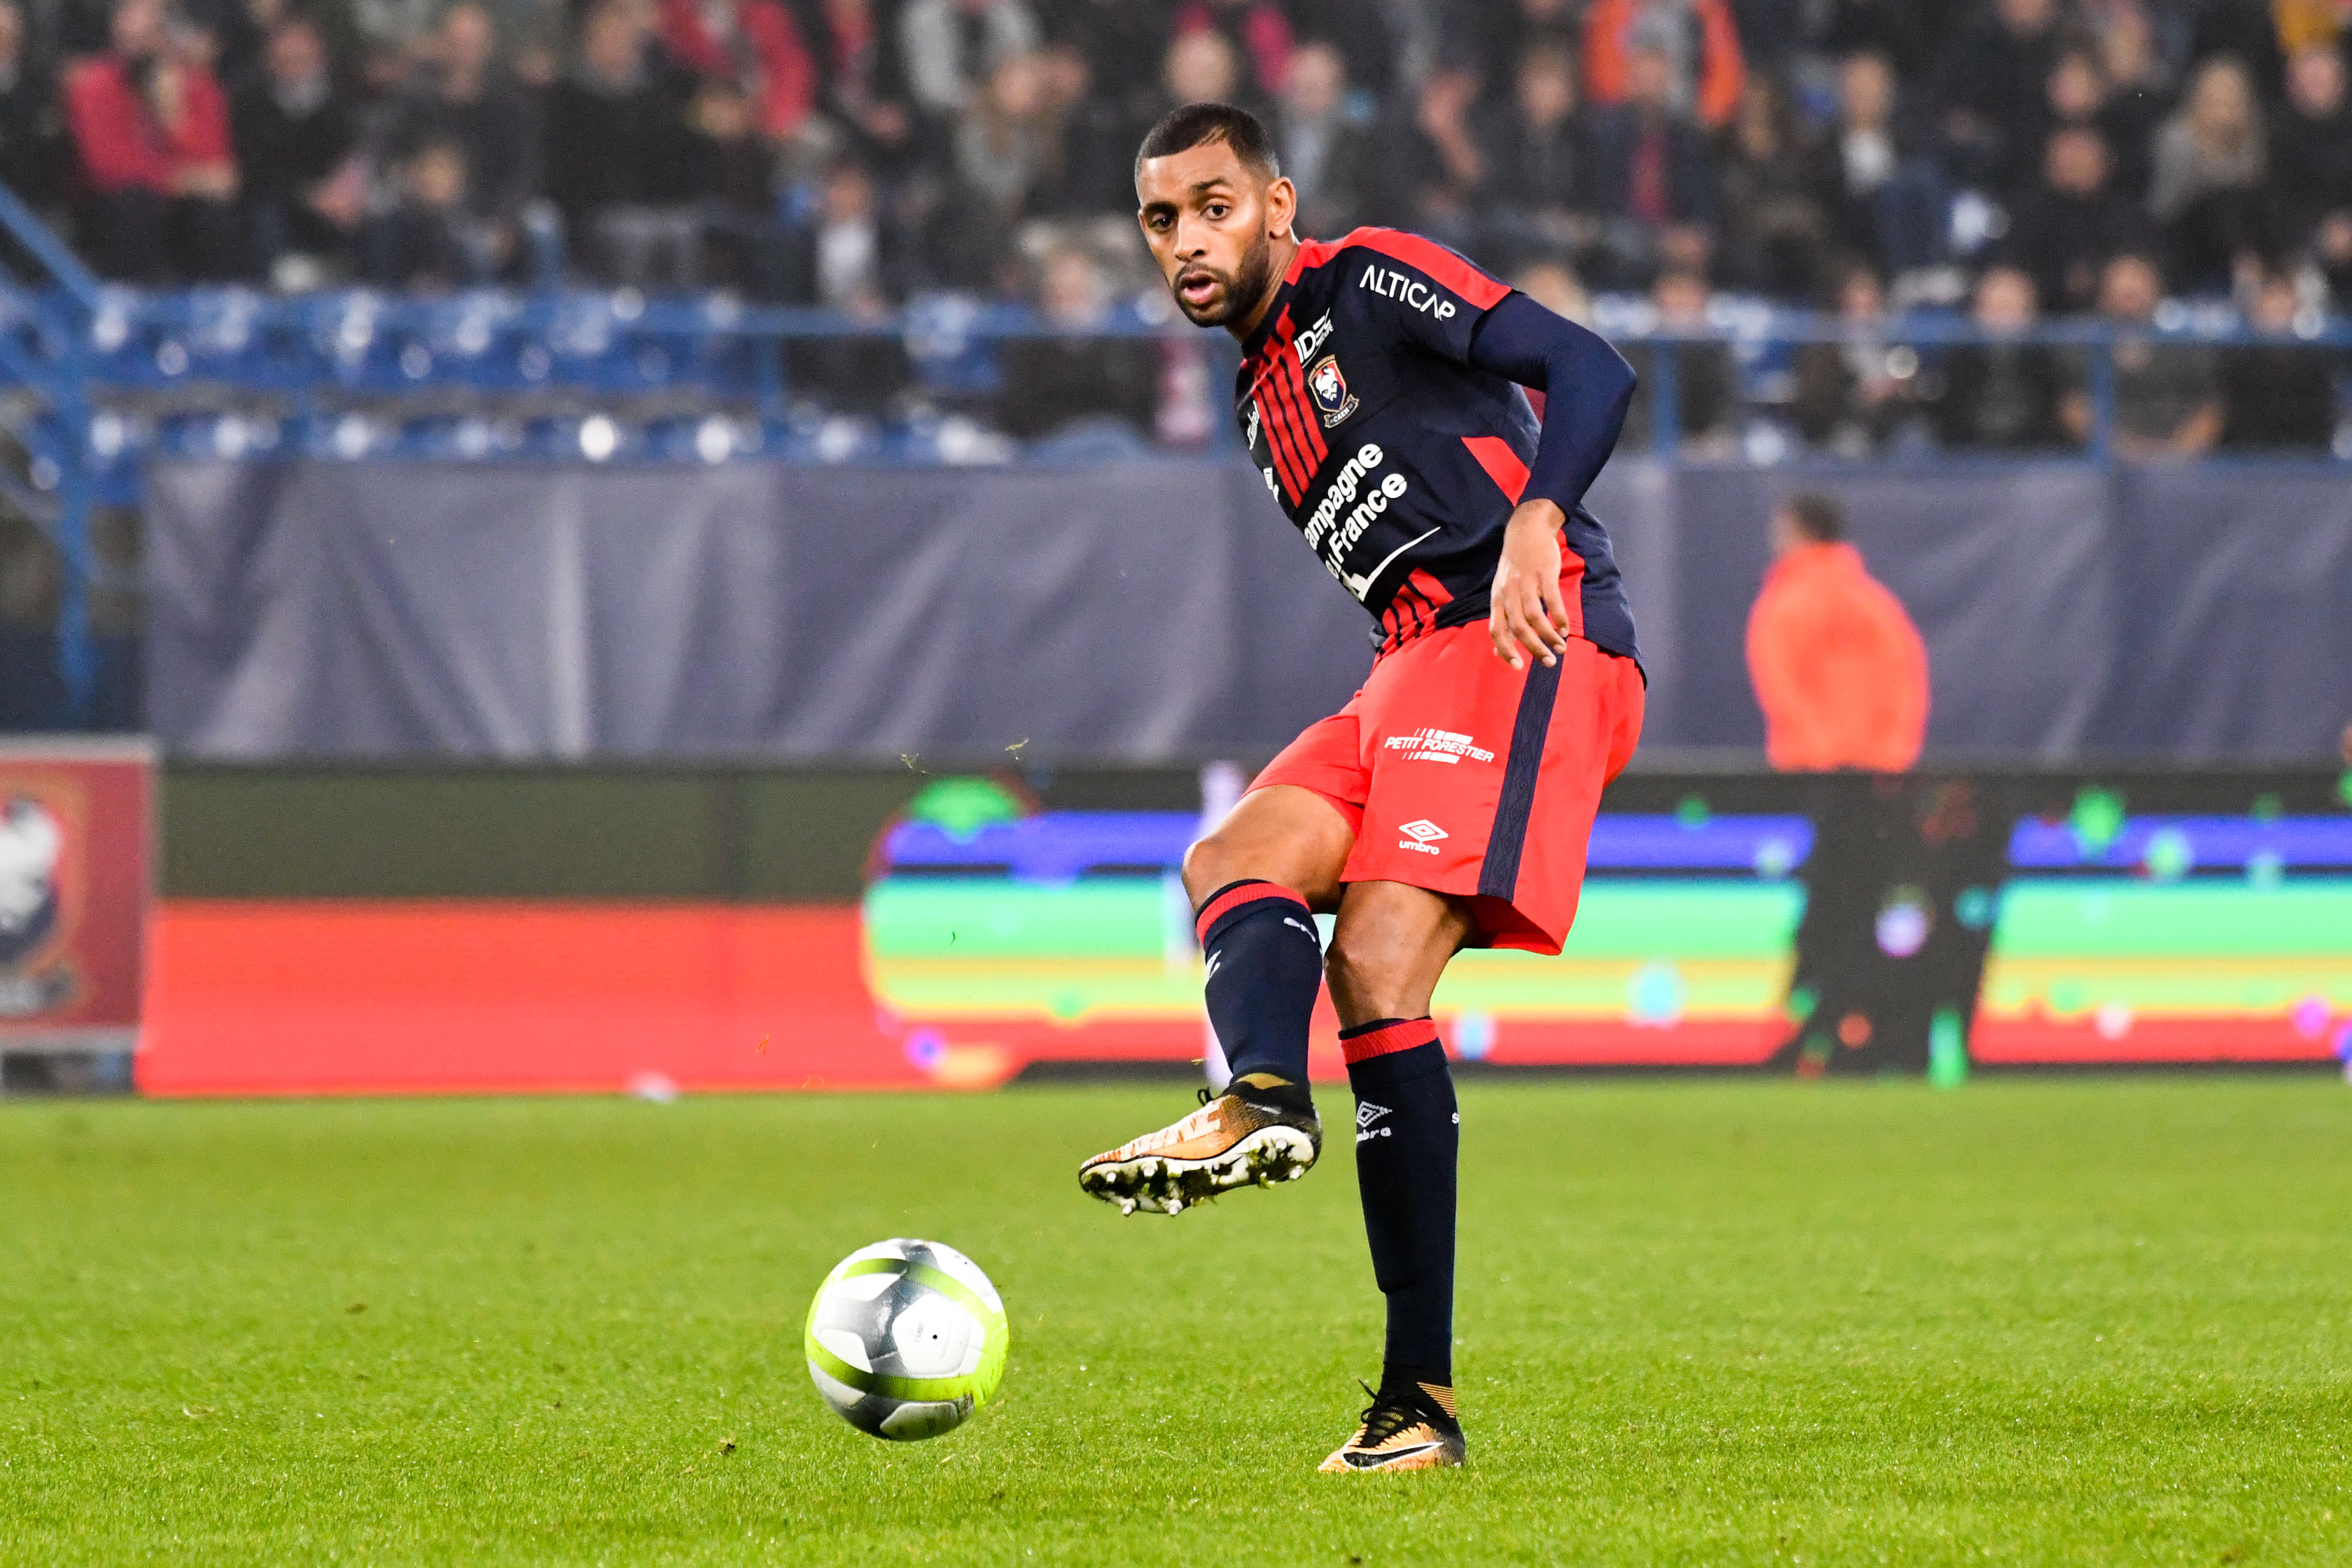 Coupe de la ligue lorient caen en direct coupe de la ligue football - Resultat coupe de la ligue en direct ...